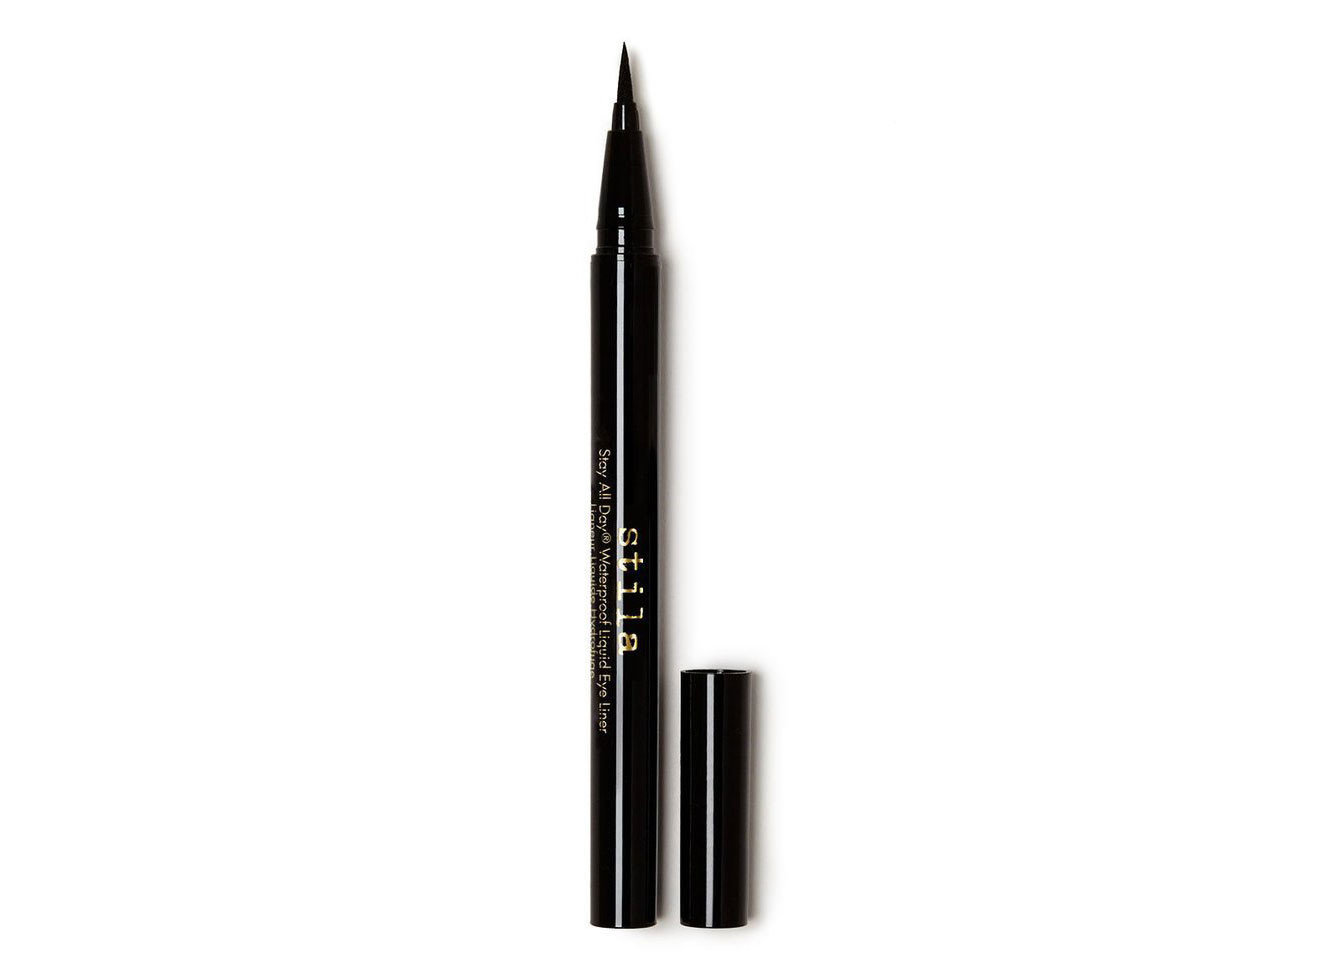 Beauty Travel Shop cosmetics brush product product design office supplies eye liner health & beauty